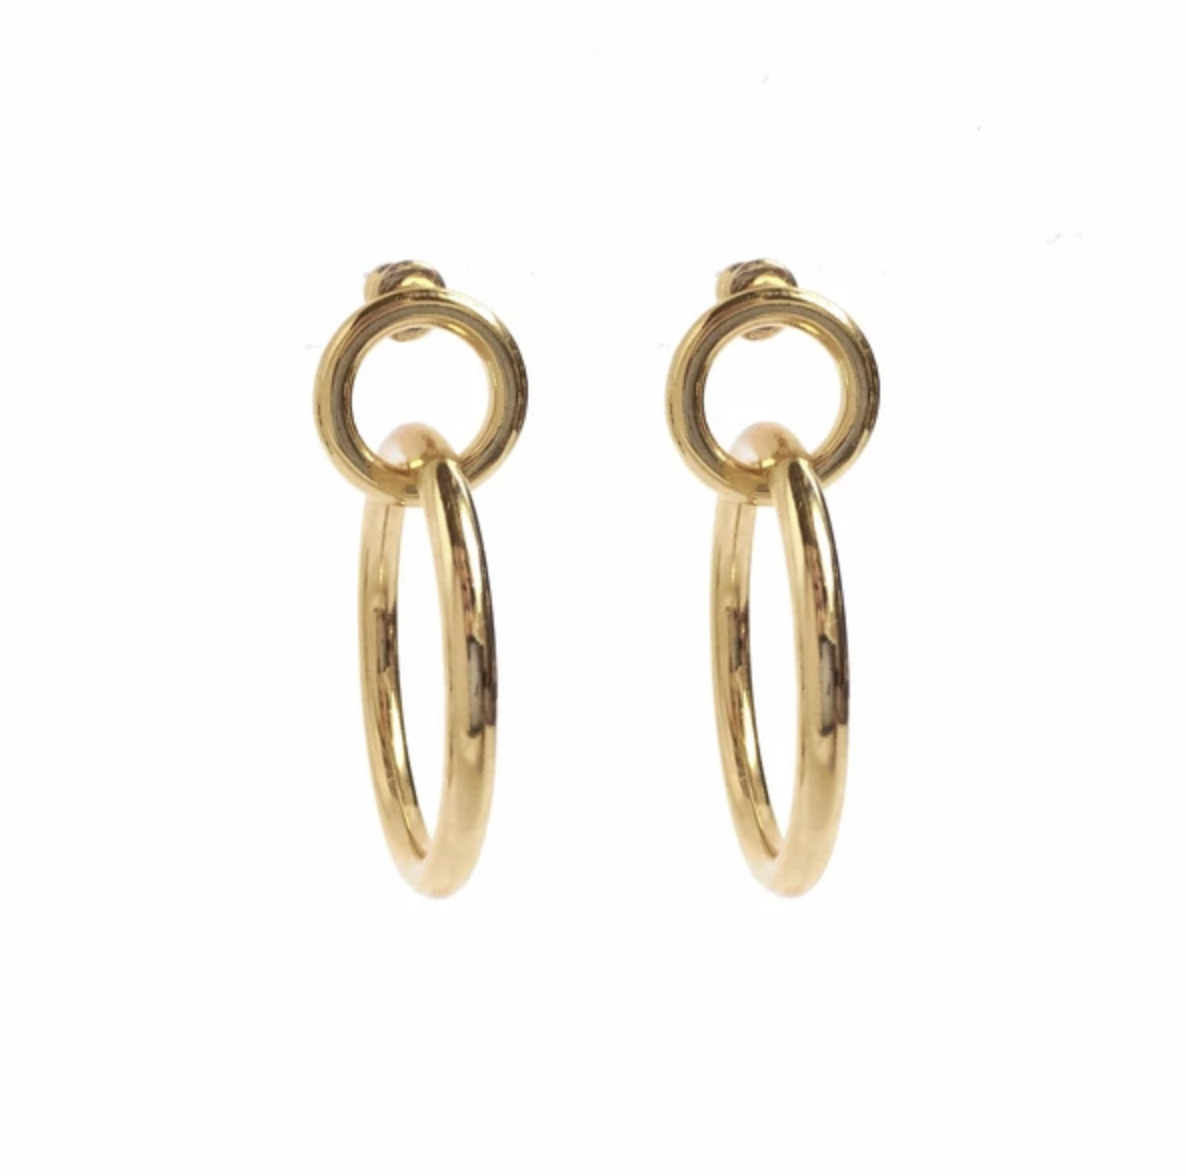 Lady Grey Small Link Hoops in 14K Gold Plated Bronze